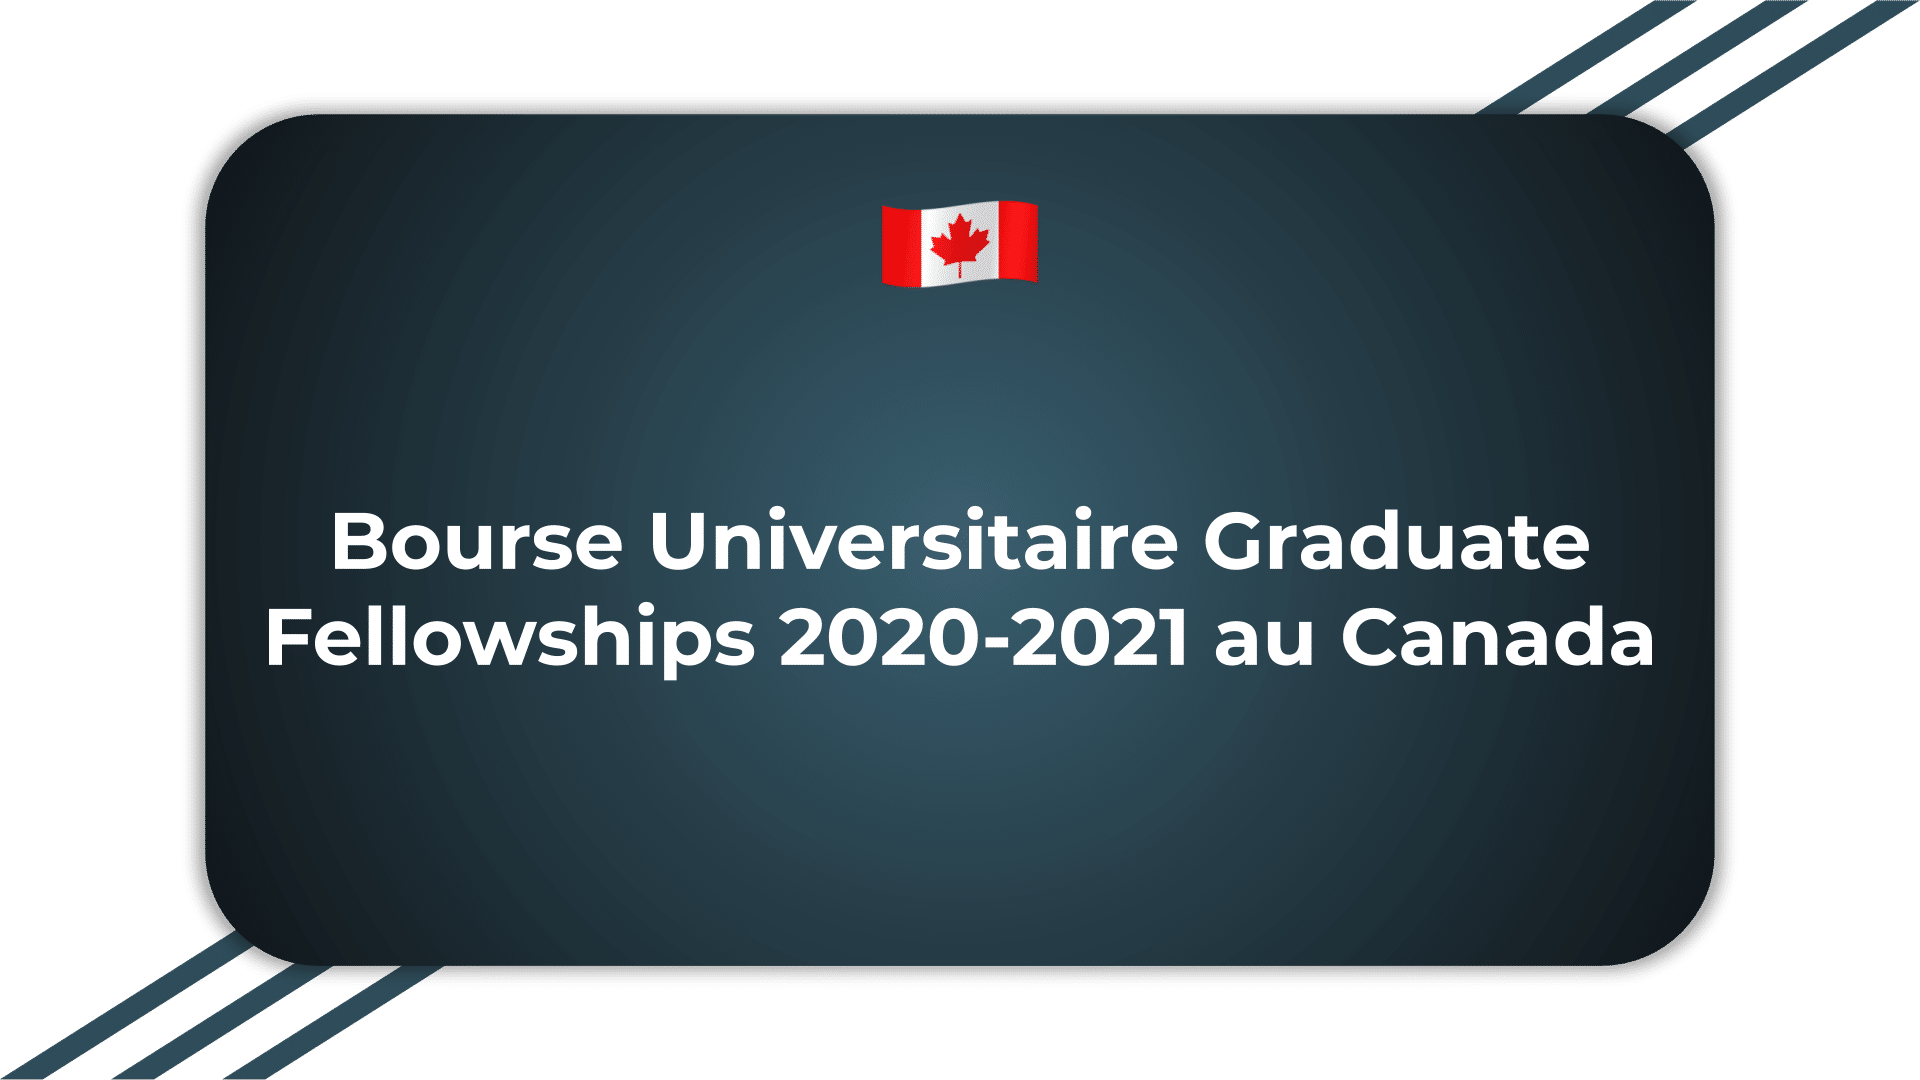 Bourse Universitaire Graduate Fellowships